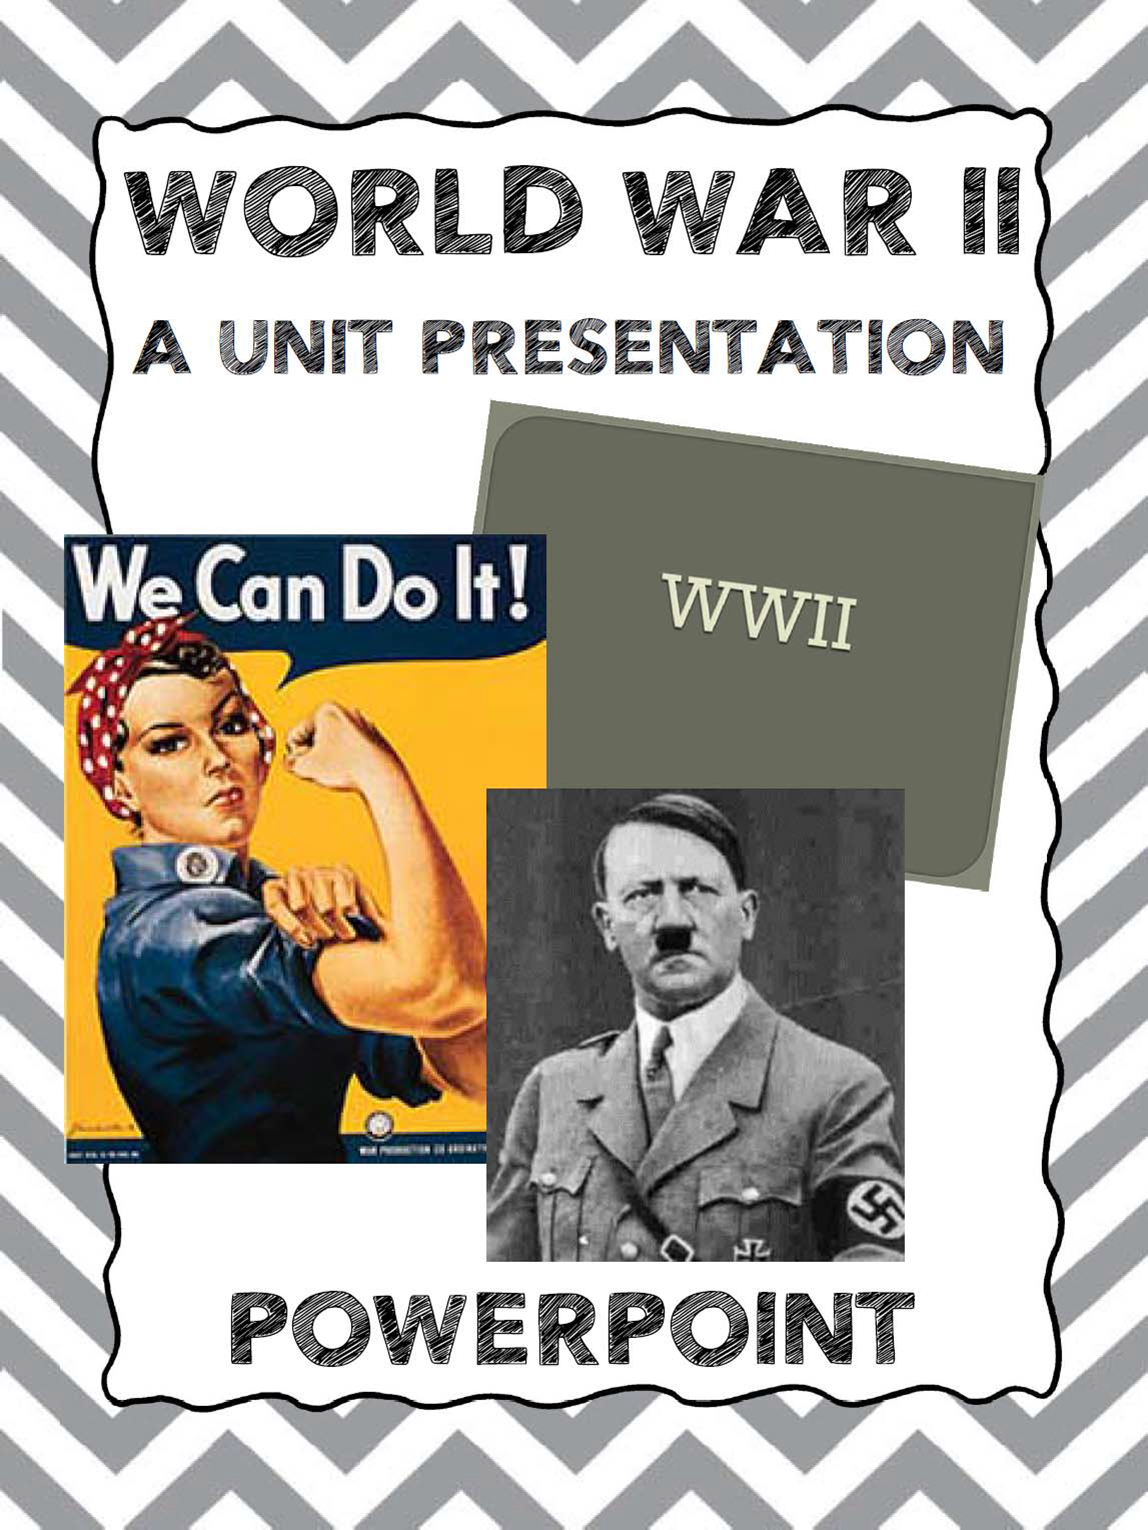 A Powerpoint Presentation Covering World War Ii Aligned